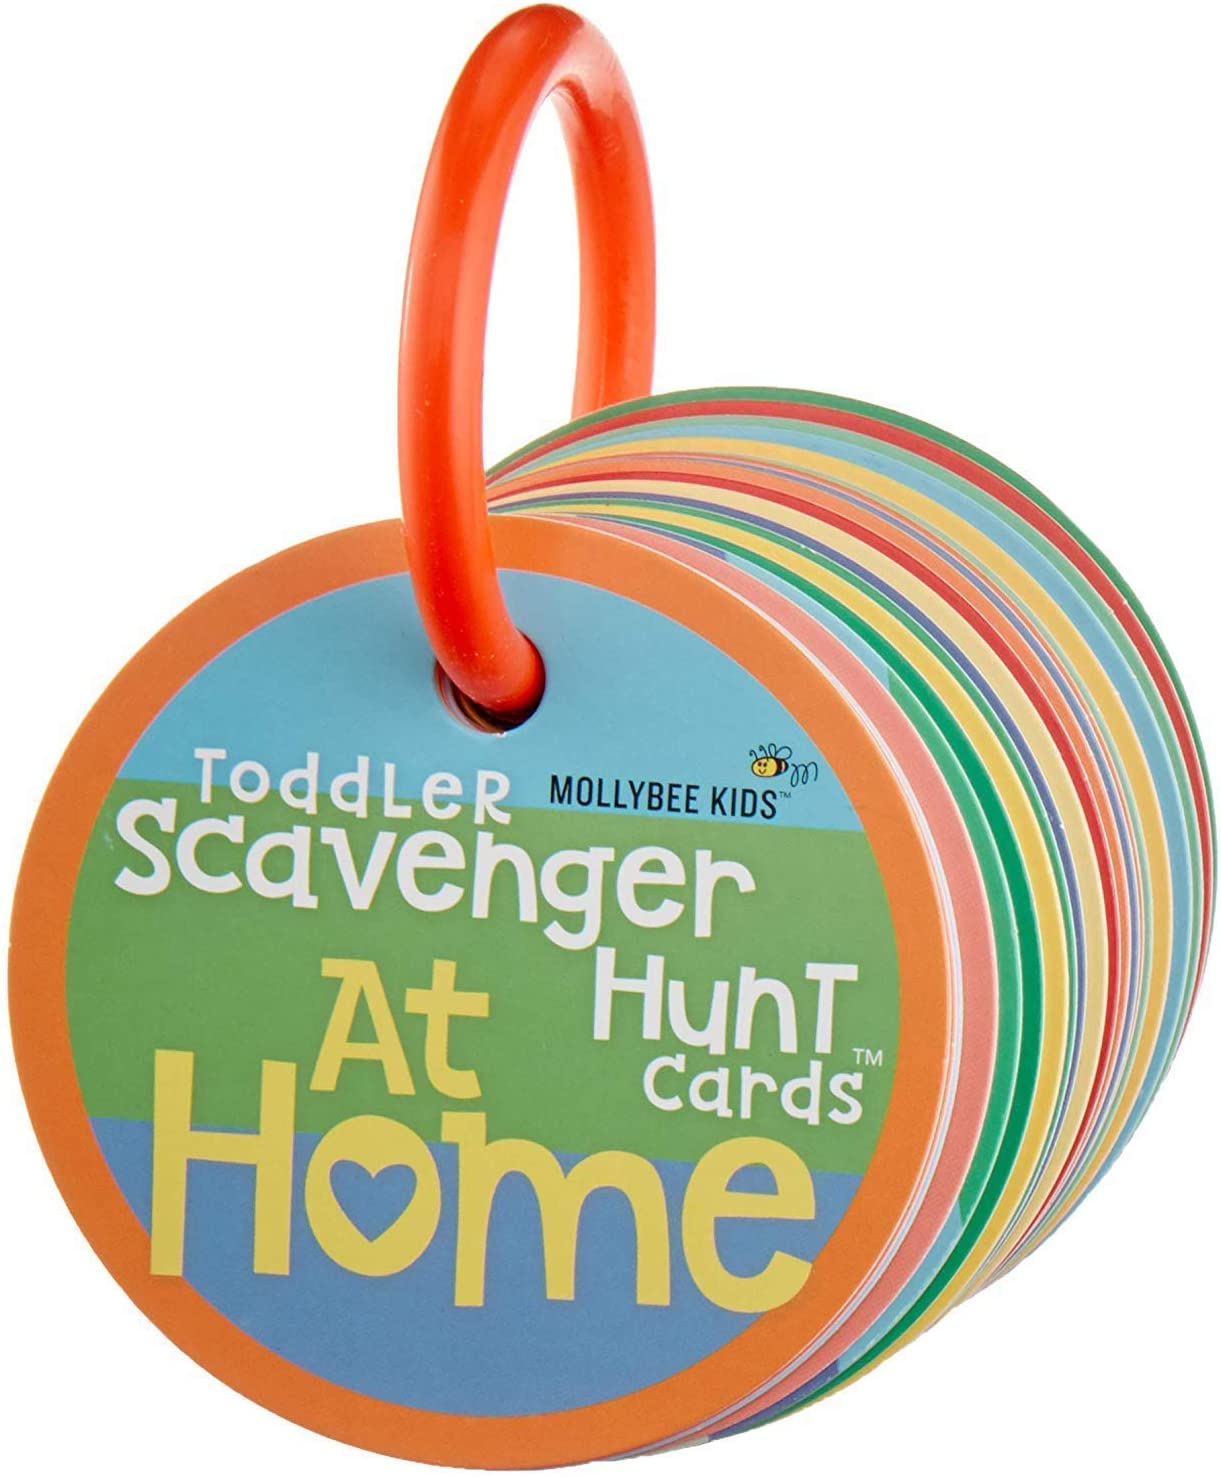 Toddler Scavenger Hunt Cooperative Card Game at Home - Interactive, Educational, and Mobile First Game Toy for Toddlers Boys Girls Kids 2 3 and Up